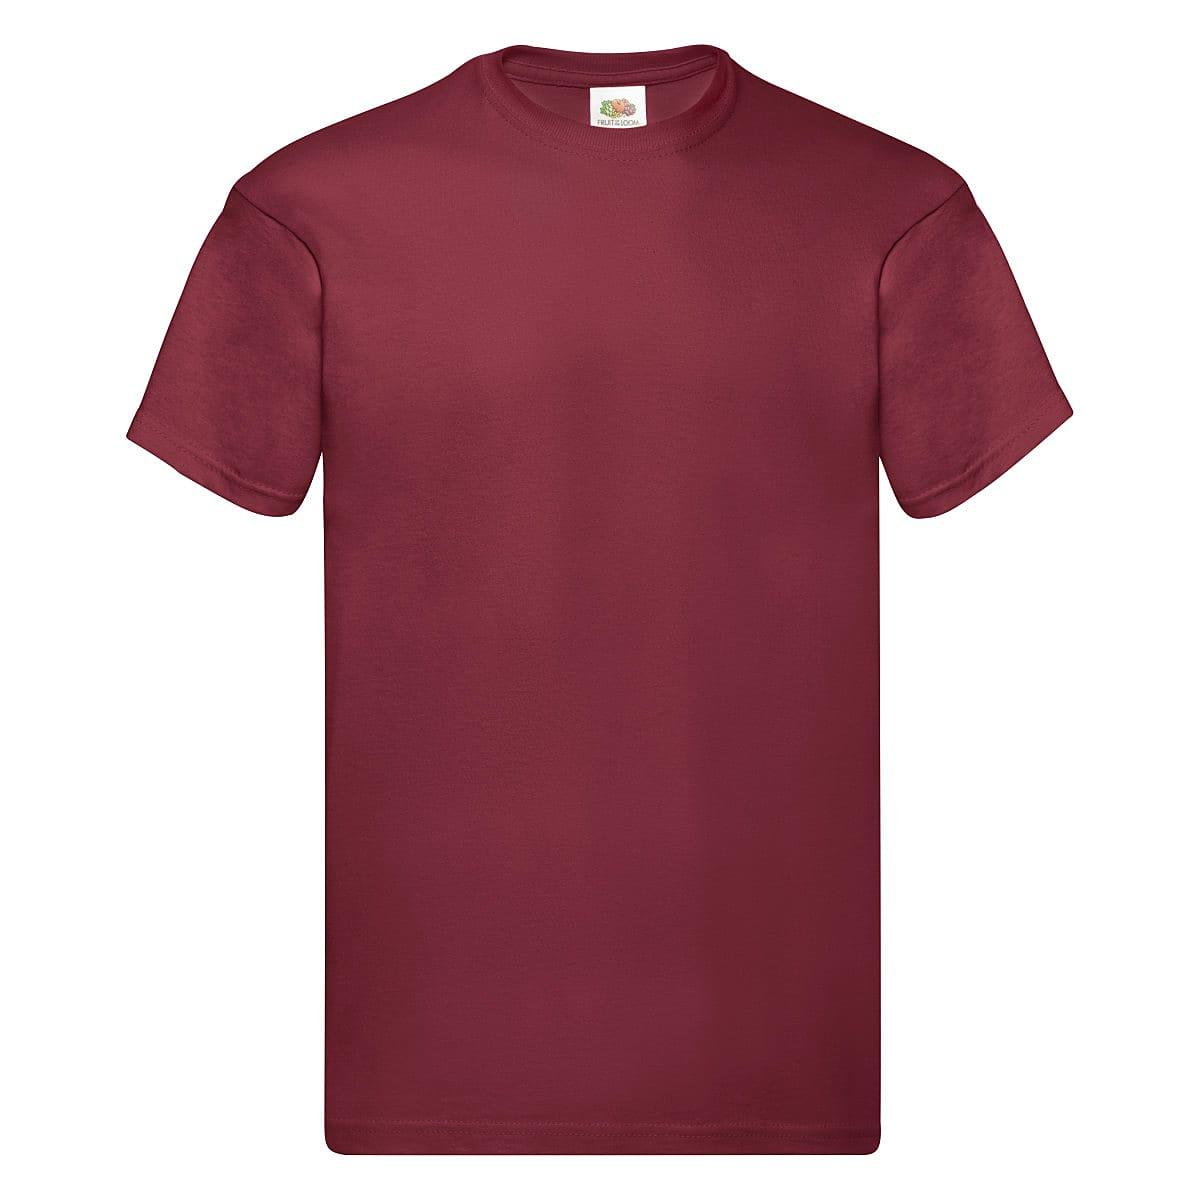 Fruit Of The Loom Original Full Cut T-Shirt in Brick Red (Product Code: 61082)